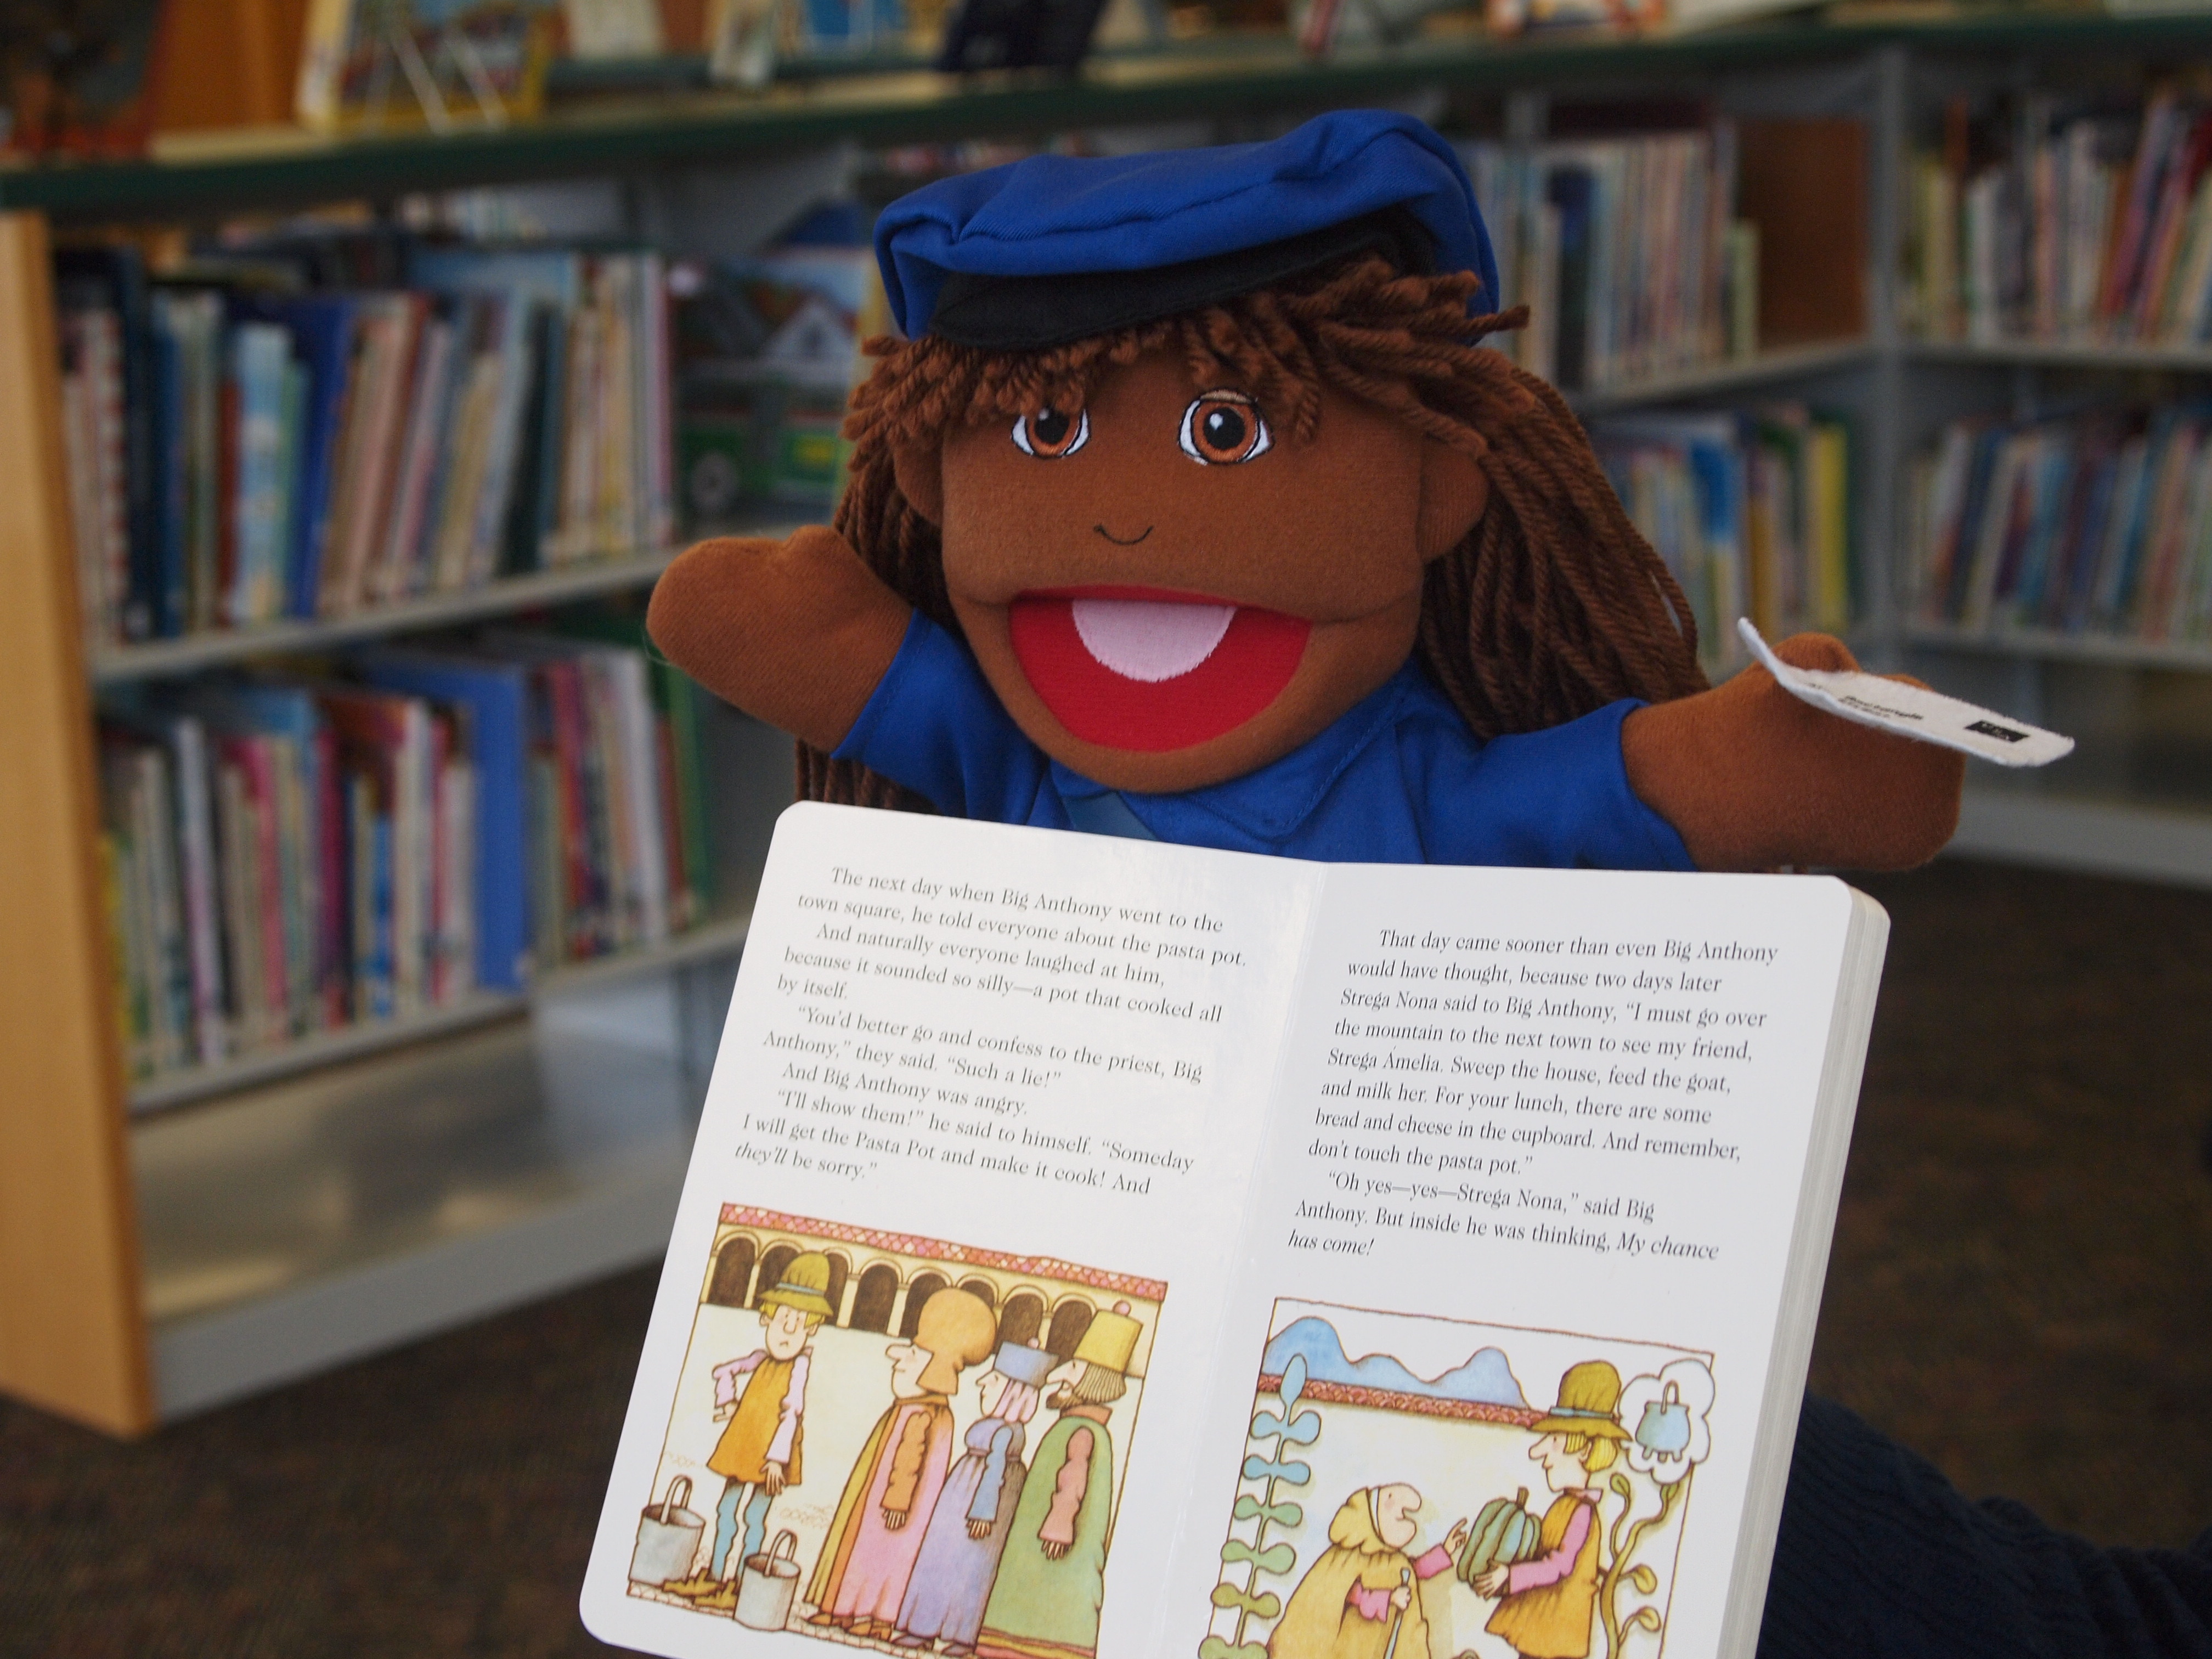 Puppet with book propped against it